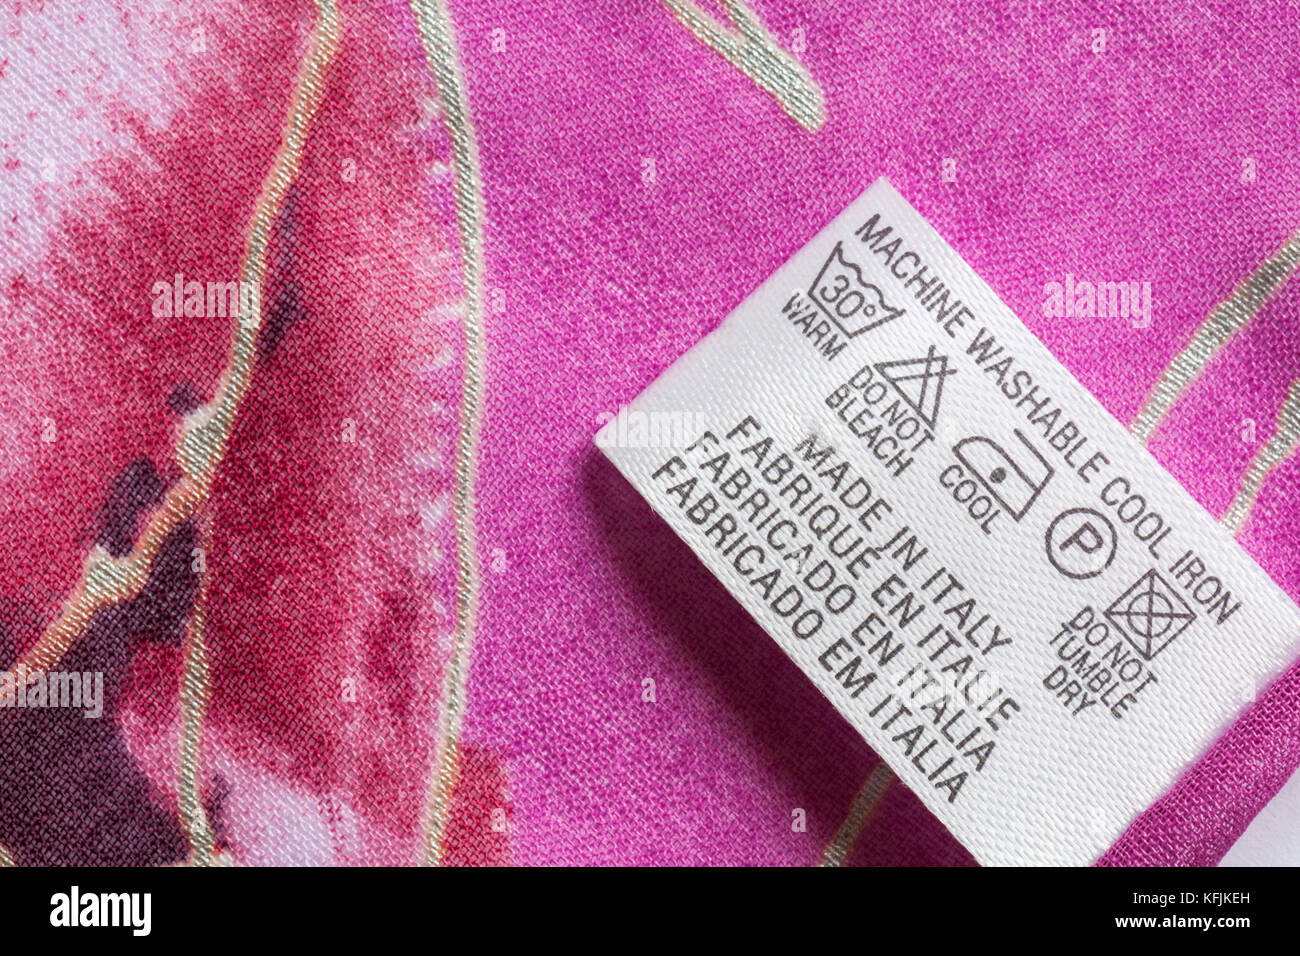 Wash Symbols Stock Photos & Wash Symbols Stock Images - Alamy